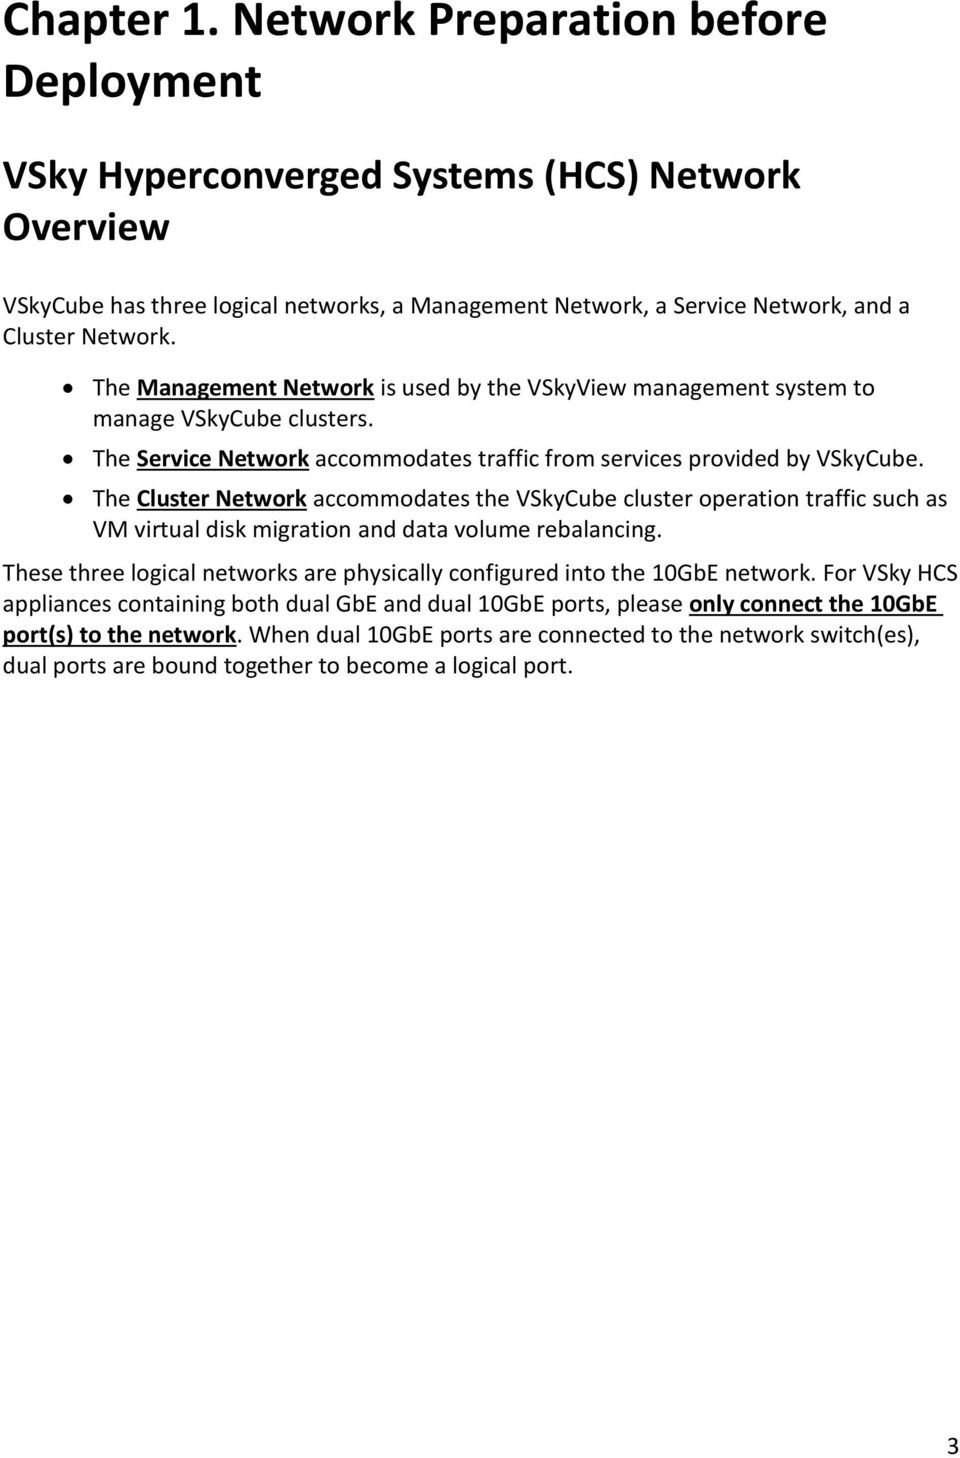 The Cluster Network accommodates the VSkyCube cluster operation traffic such as VM virtual disk migration and data volume rebalancing.